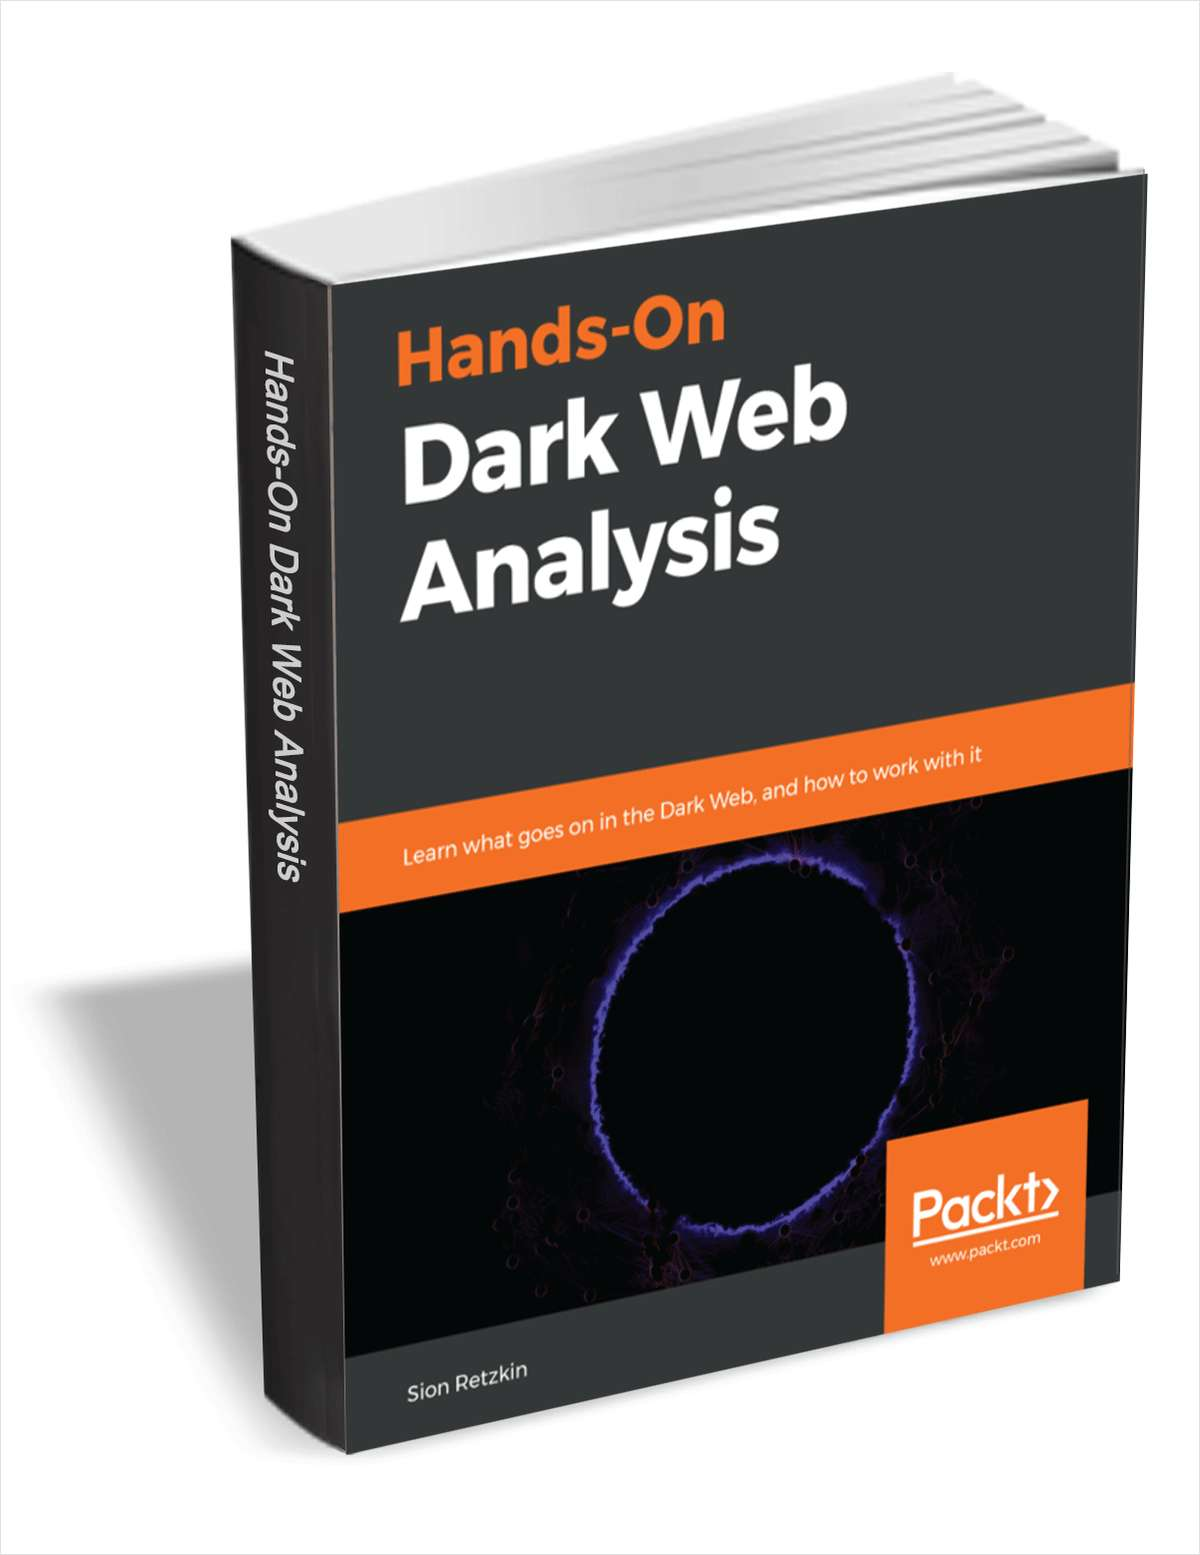 Hands-On Dark Web Analysis ($23.99 Value) FREE for a Limited Time